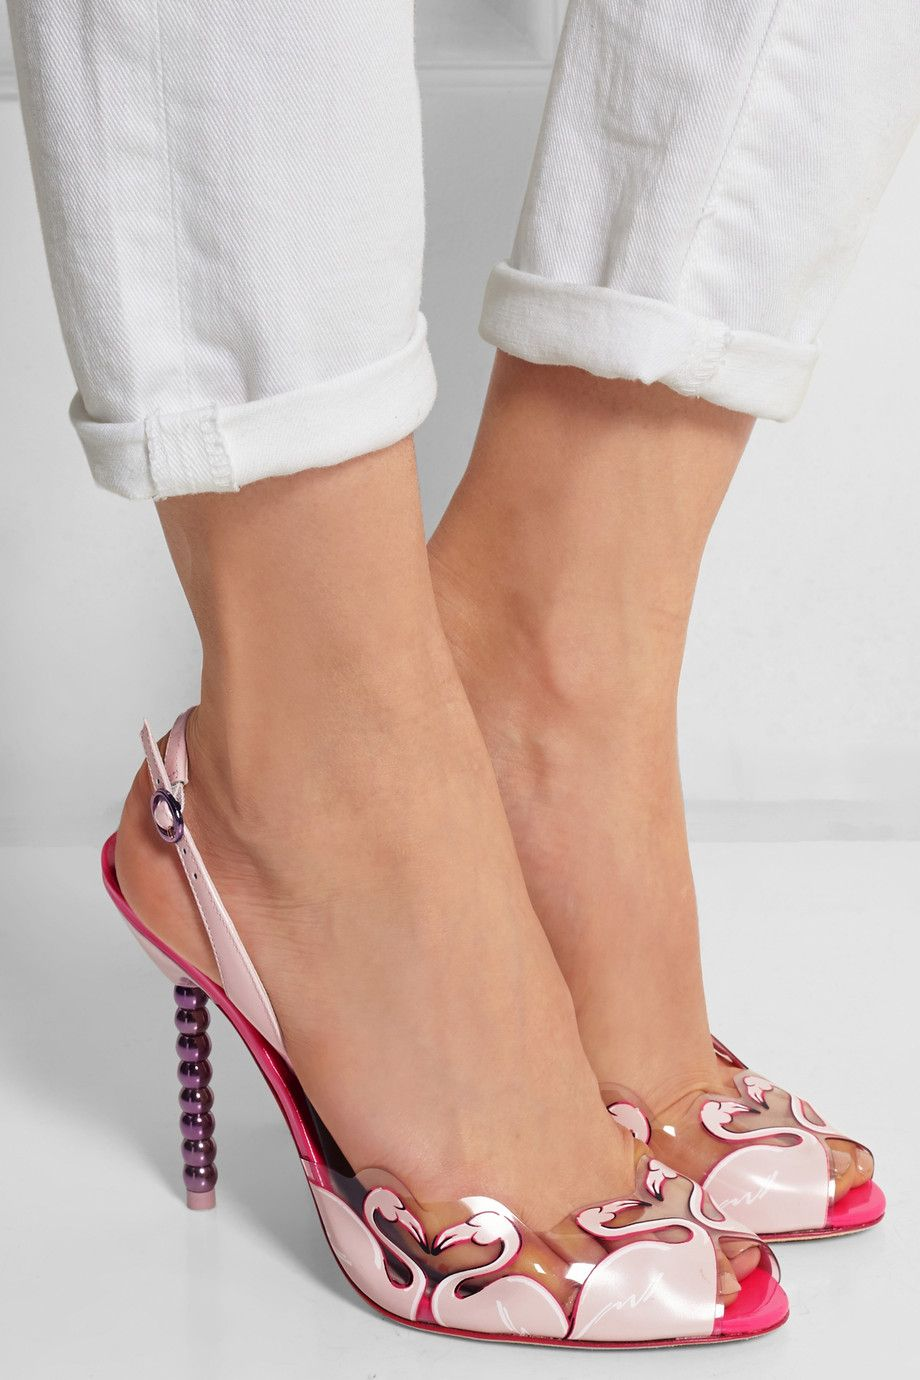 Sophia Webster PVC Ankle Strap Sandals clearance best buy cheap buy high quality for sale xXXaOM